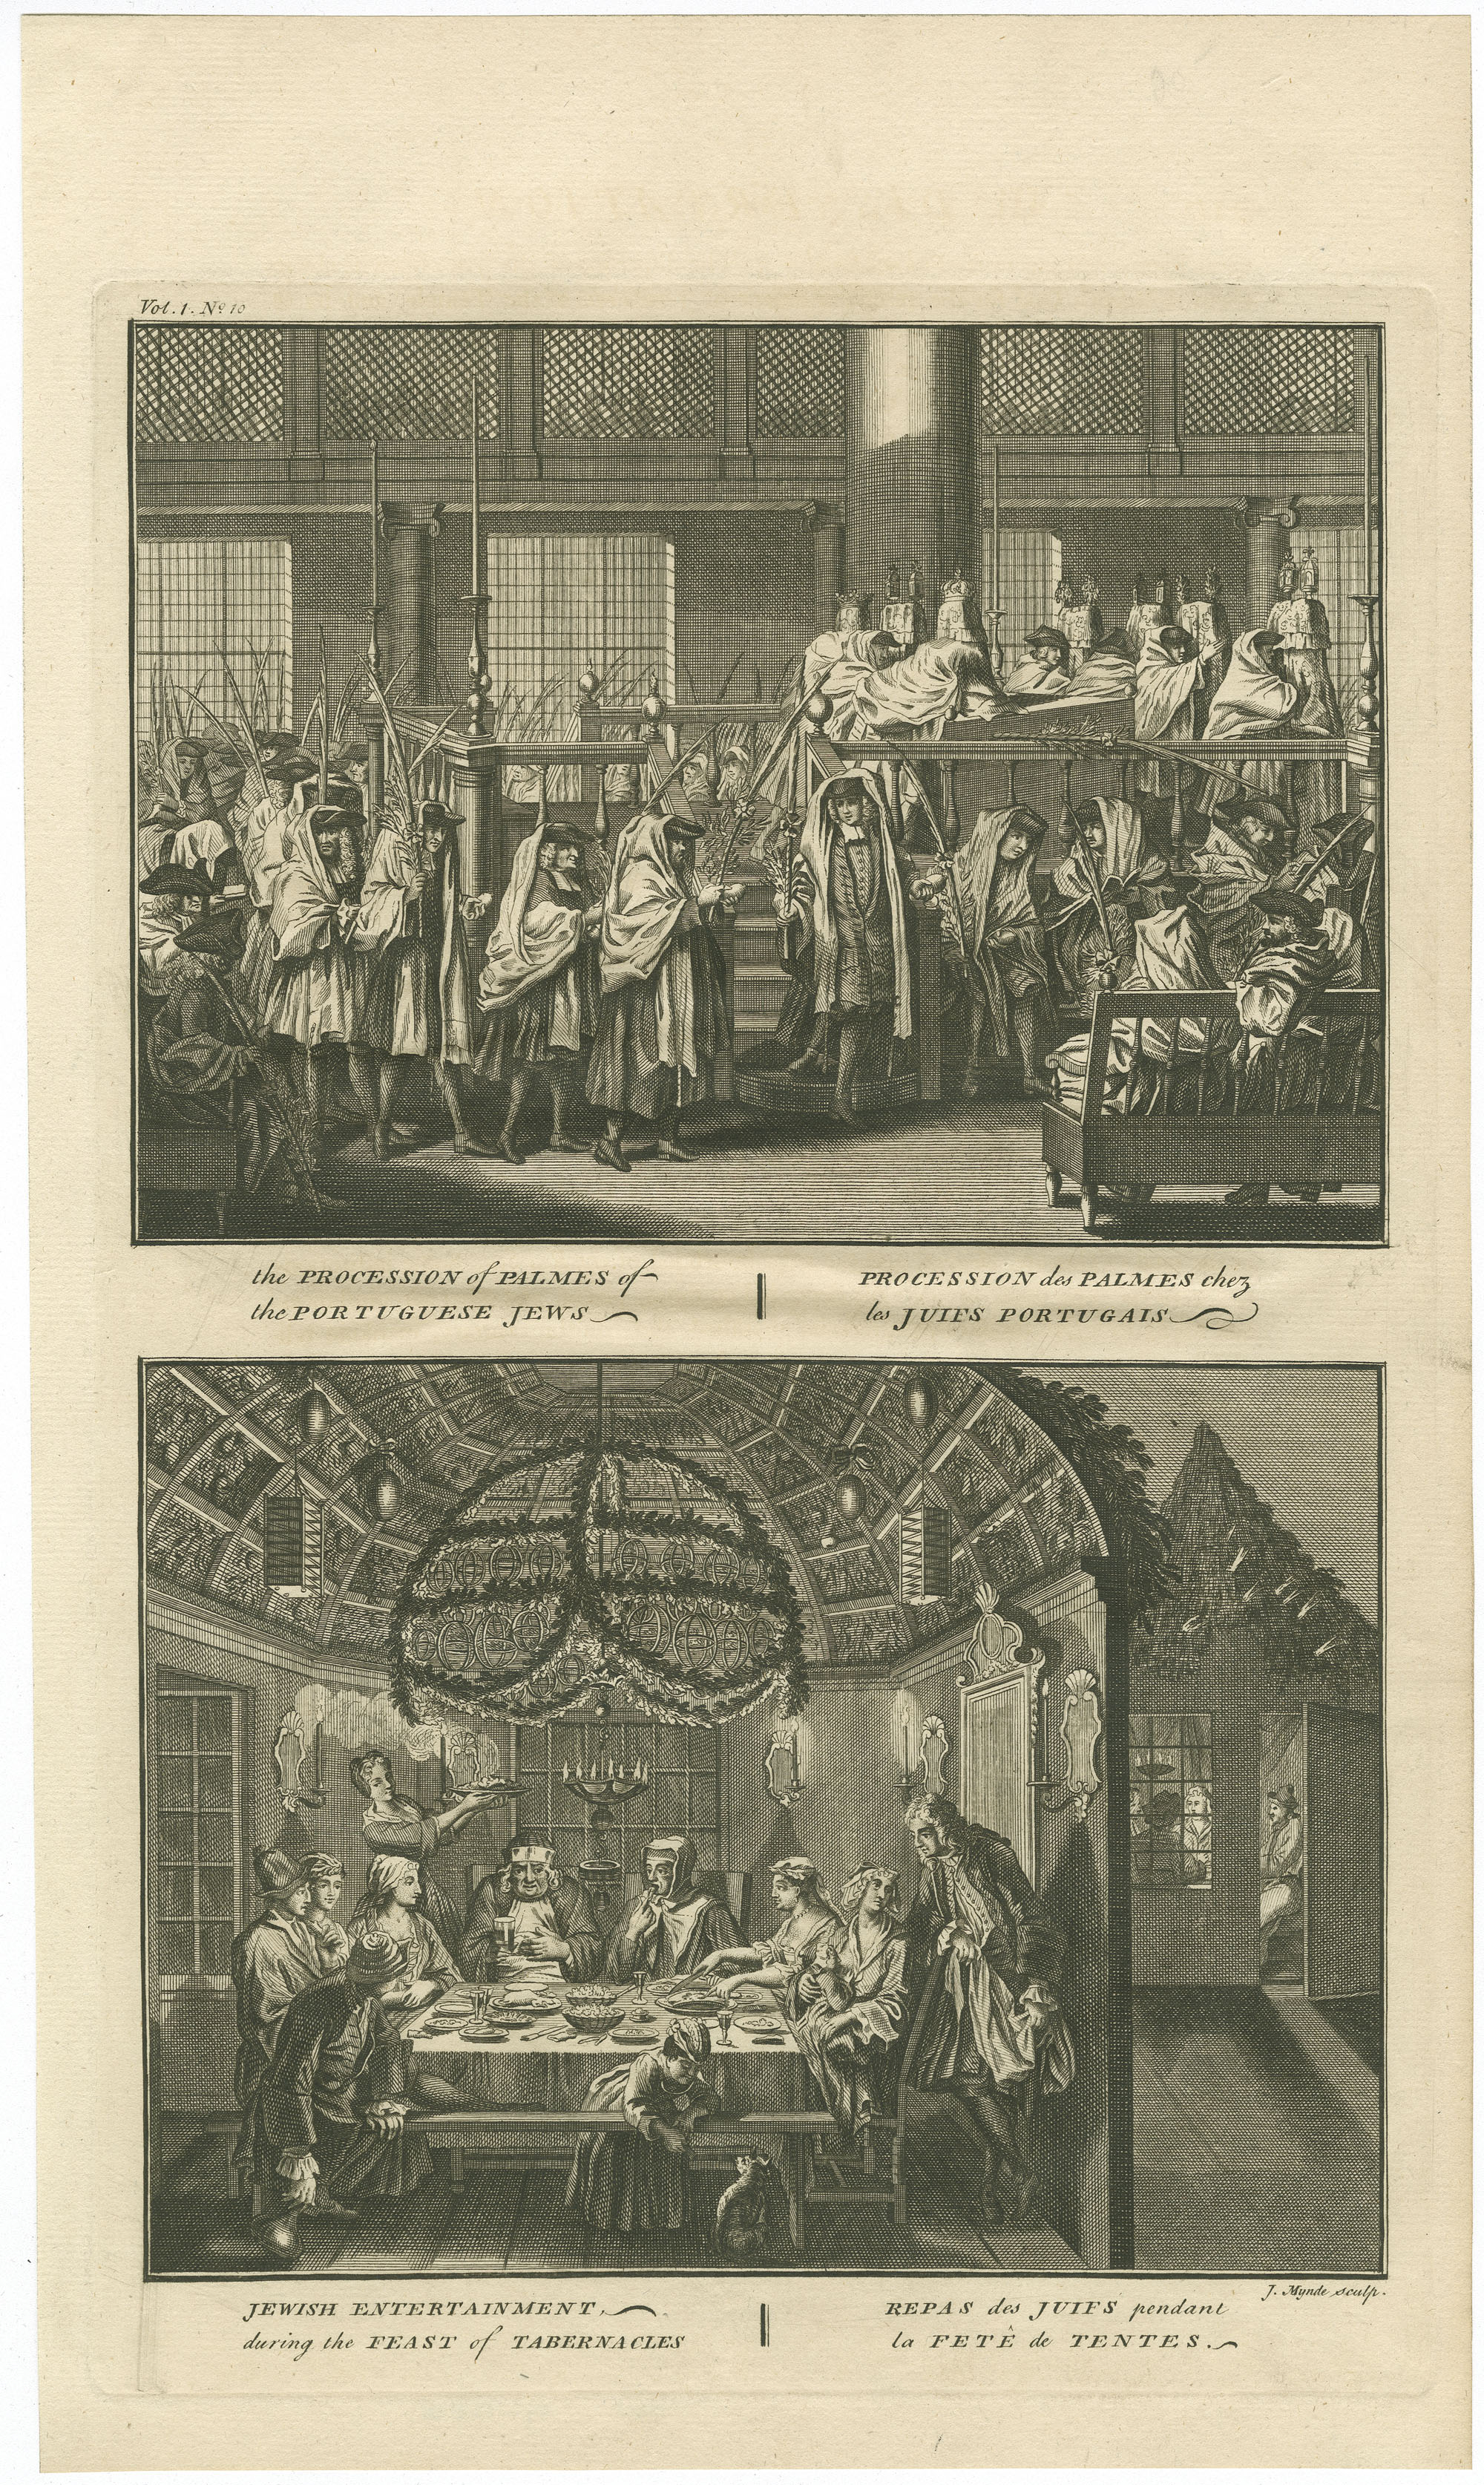 The Procession of the Palmes of the Portuguese Jews / Procession des Palmes chez les Juifs Portugais - Jewish entertainment during the Feast of Tabernacles / Repas des Juifs pendant la Fête des Tentes